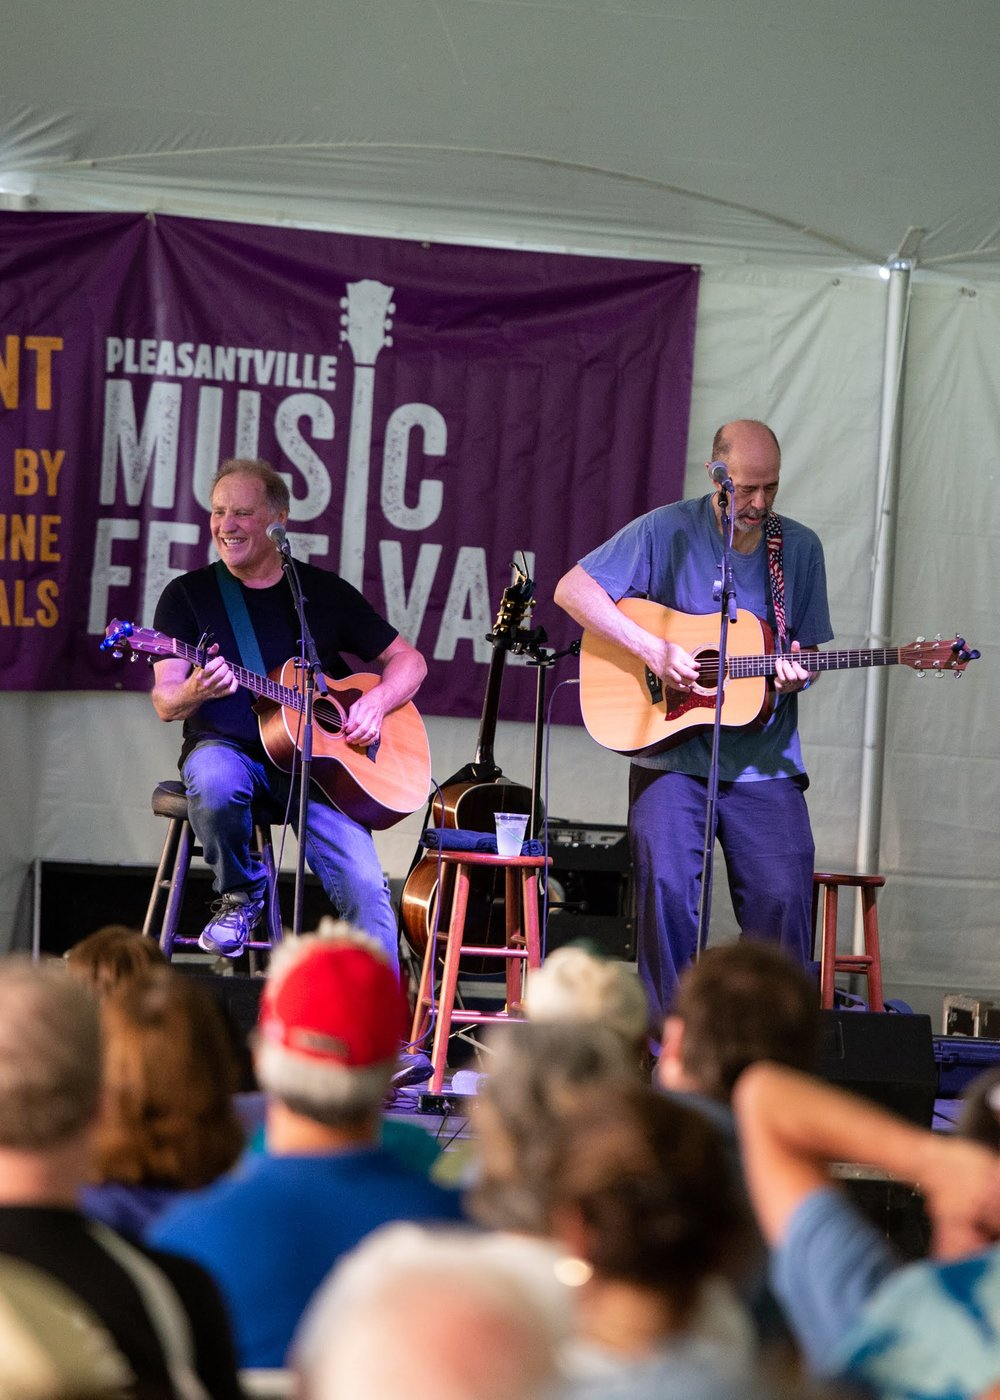 John Hall (right) with Fly Amero headlining the Chill Tent Stage © 2018 Lynda Shenkman